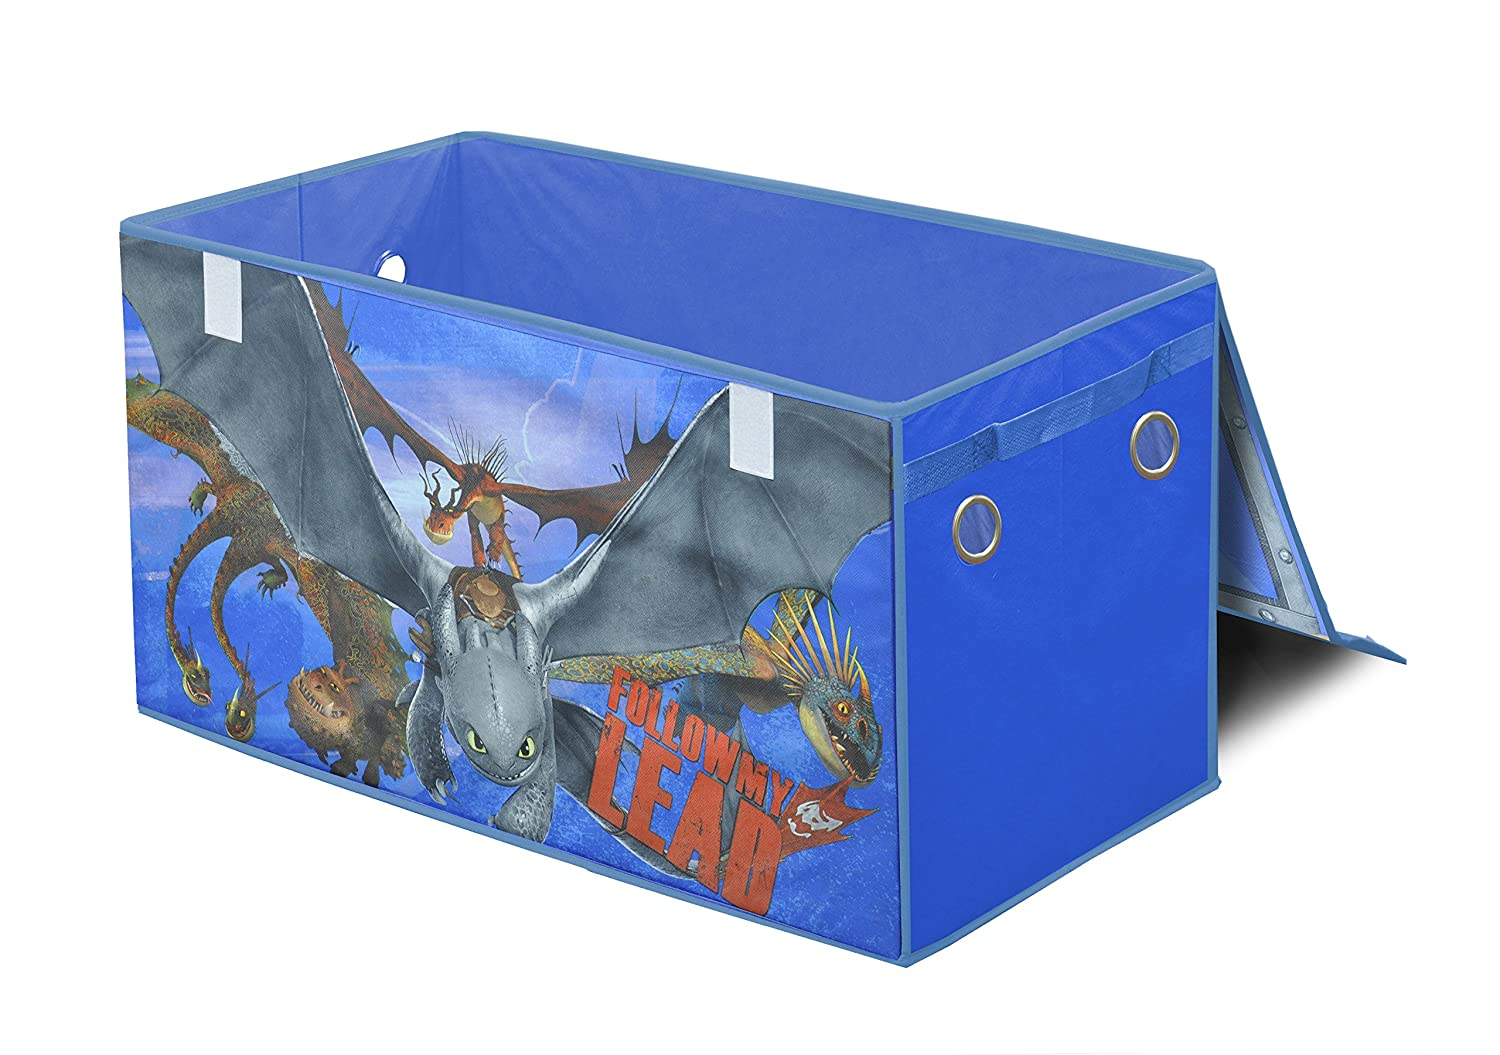 Mens Bedroom Umes Amazoncom Dreamworks How To Train Your Dragon Collapsible